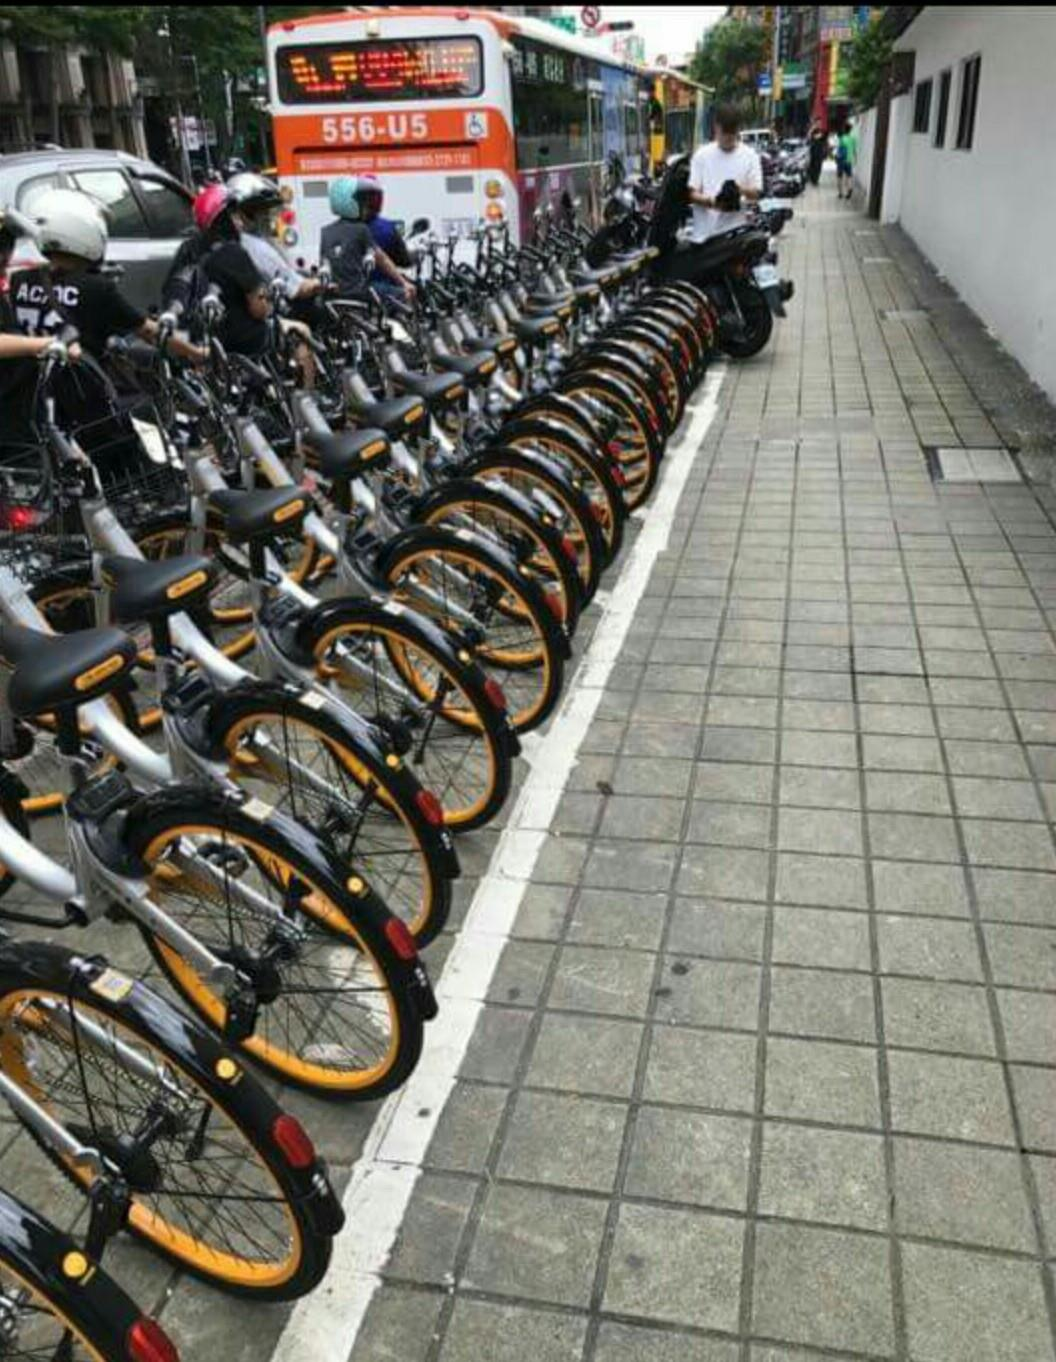 oBike Apocalypse: Netizens complain about orange horde of shared bikes covering Taiwan